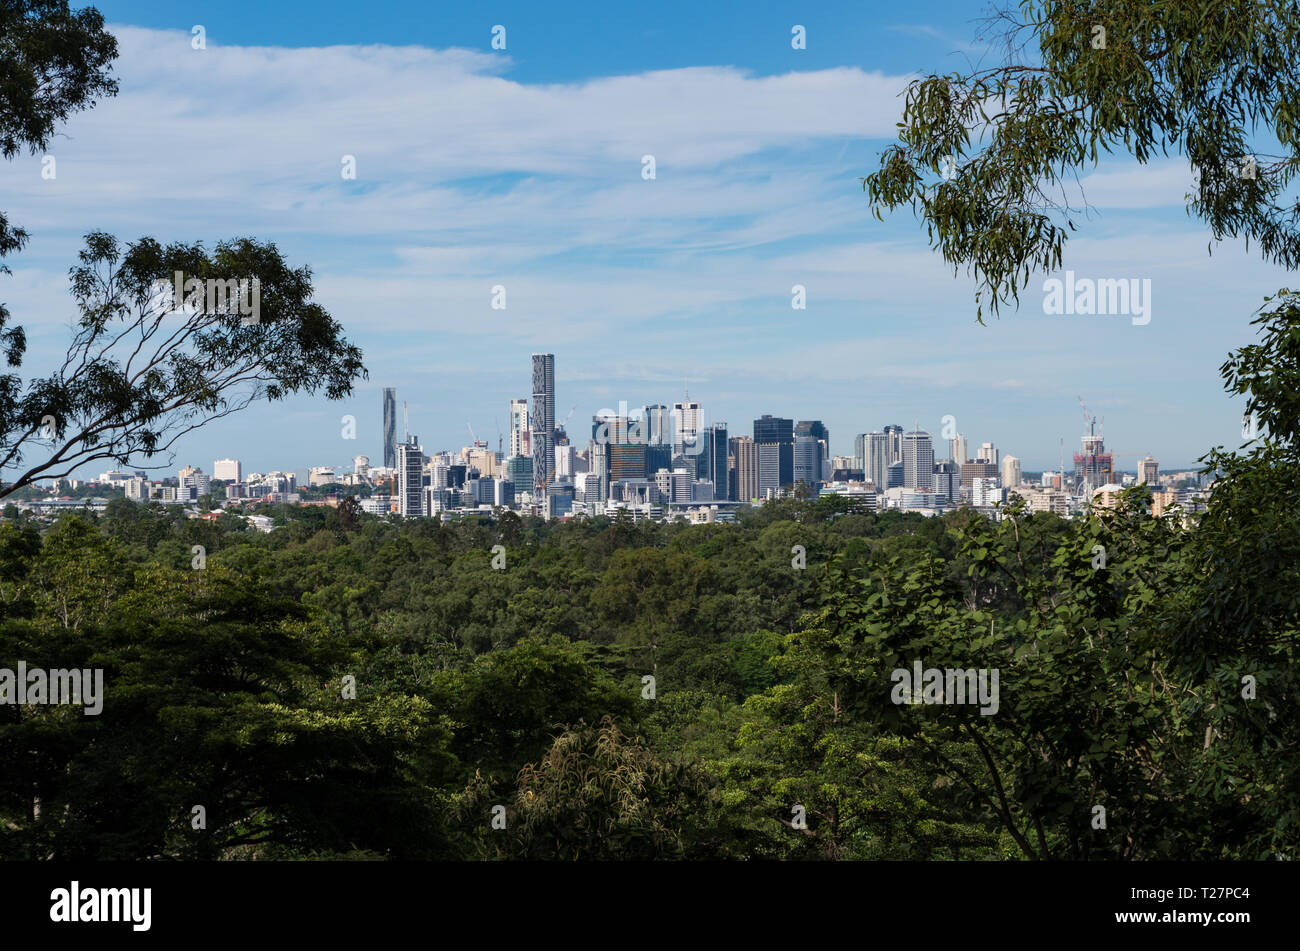 Brisbane Skyline from the forest - Stock Image